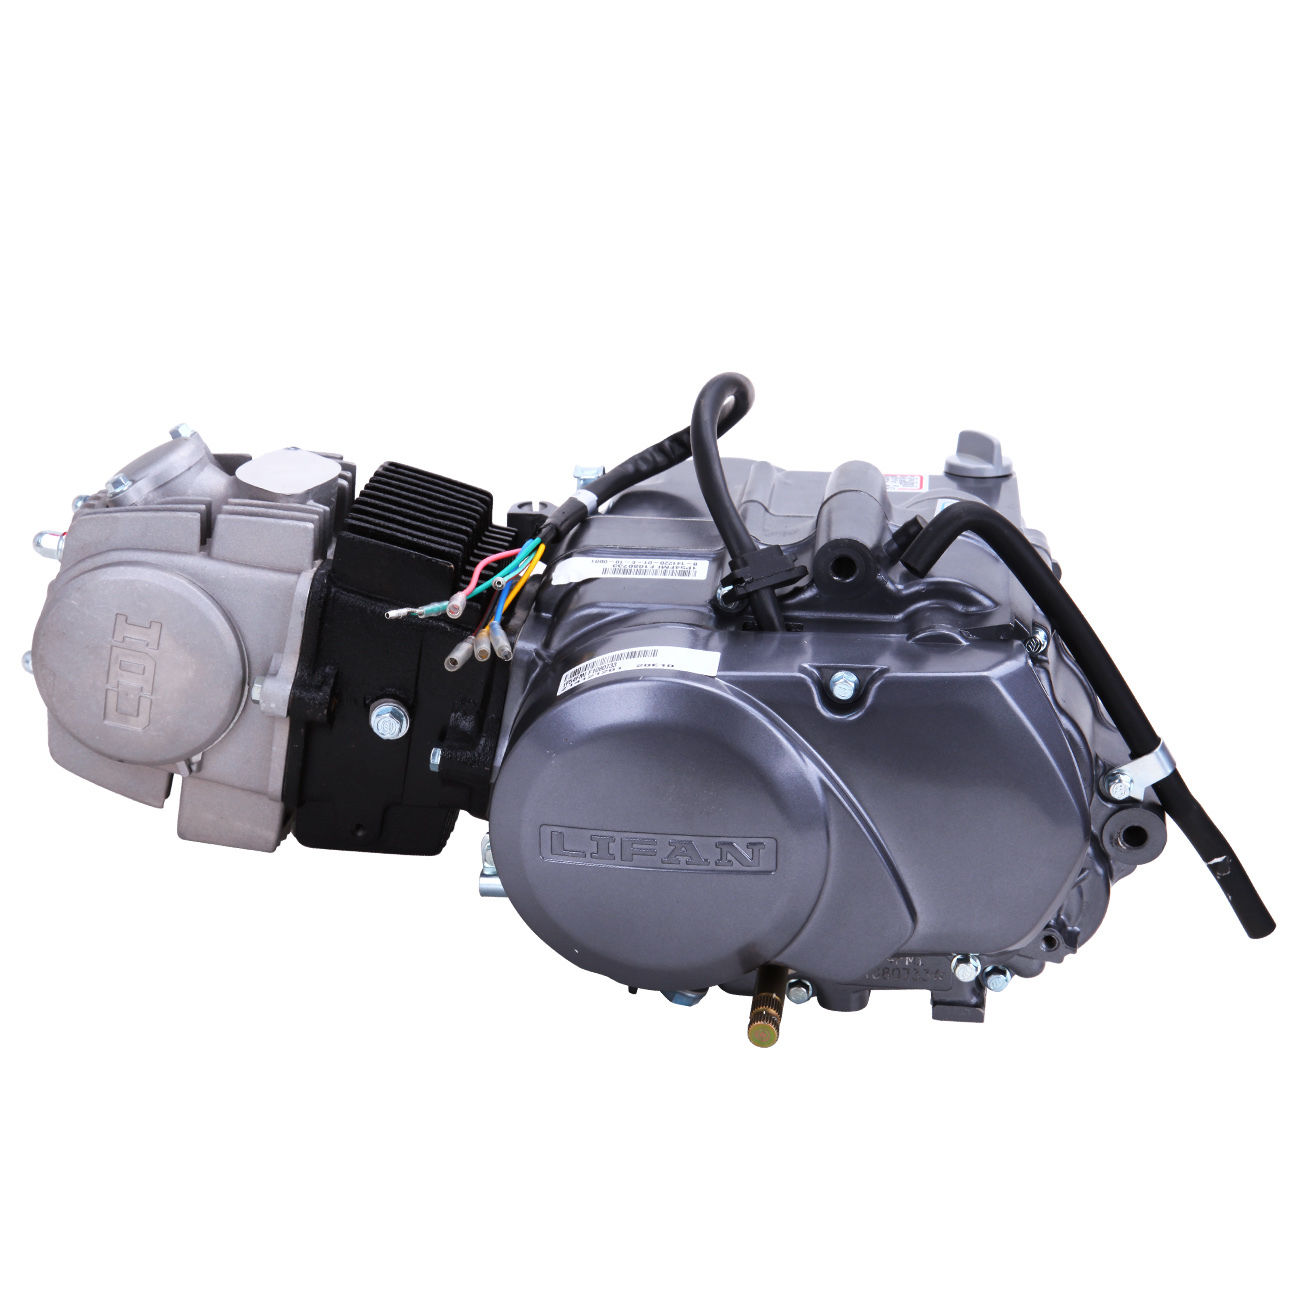 125CC CDI Dirt Bike Engine Motor Carb 124cm3 For Honda XR50 CRF50 XR CRF 50 70 125cc cdi dirt bike engine motor carb 124cm3 for honda xr50 crf50 1p52fmi-k wiring diagram at bayanpartner.co